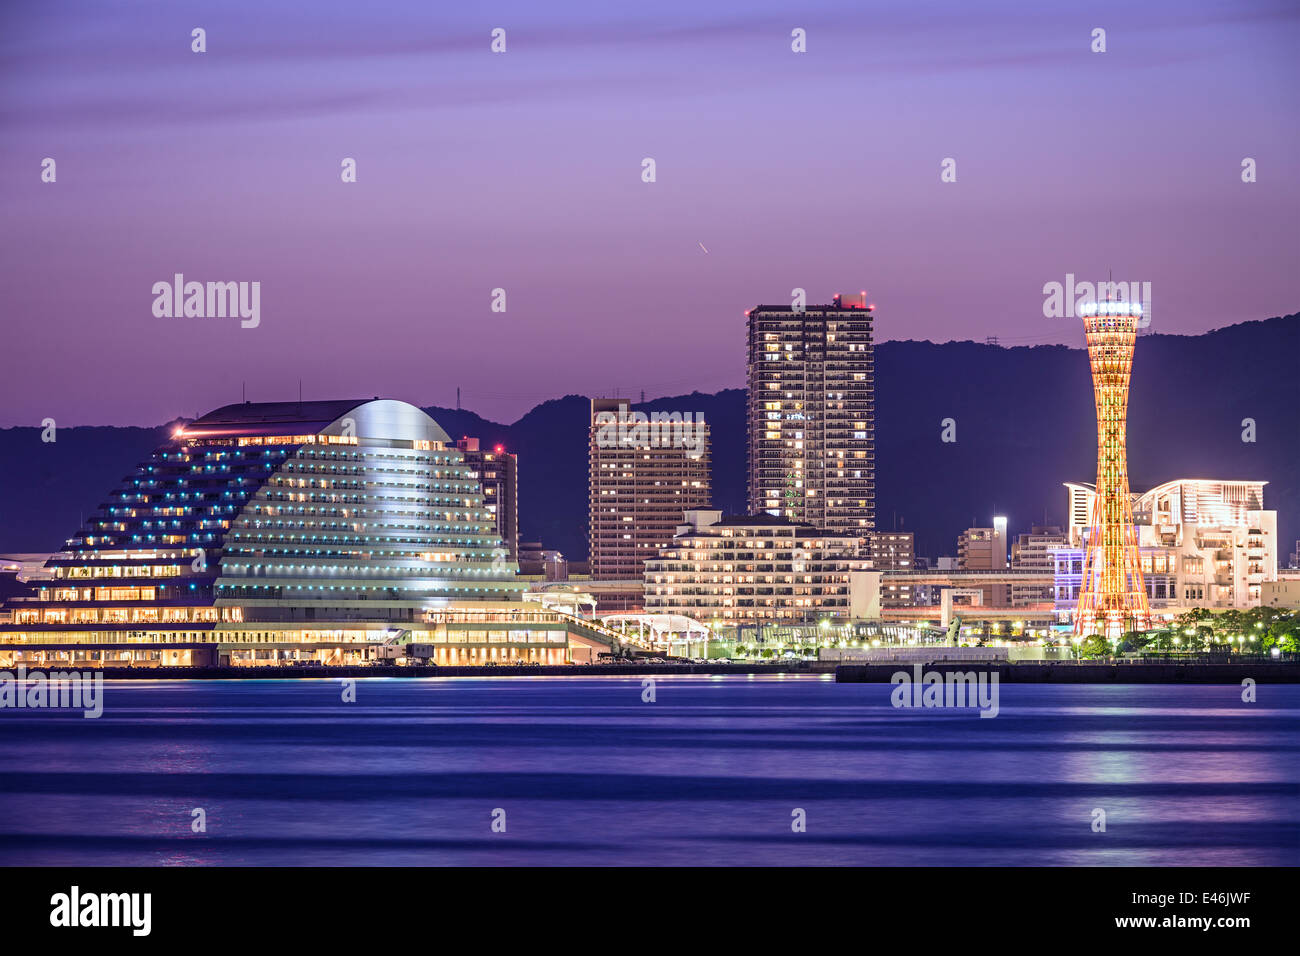 Skyline of Kobe, Japan at Port of Kobe. Stock Photo